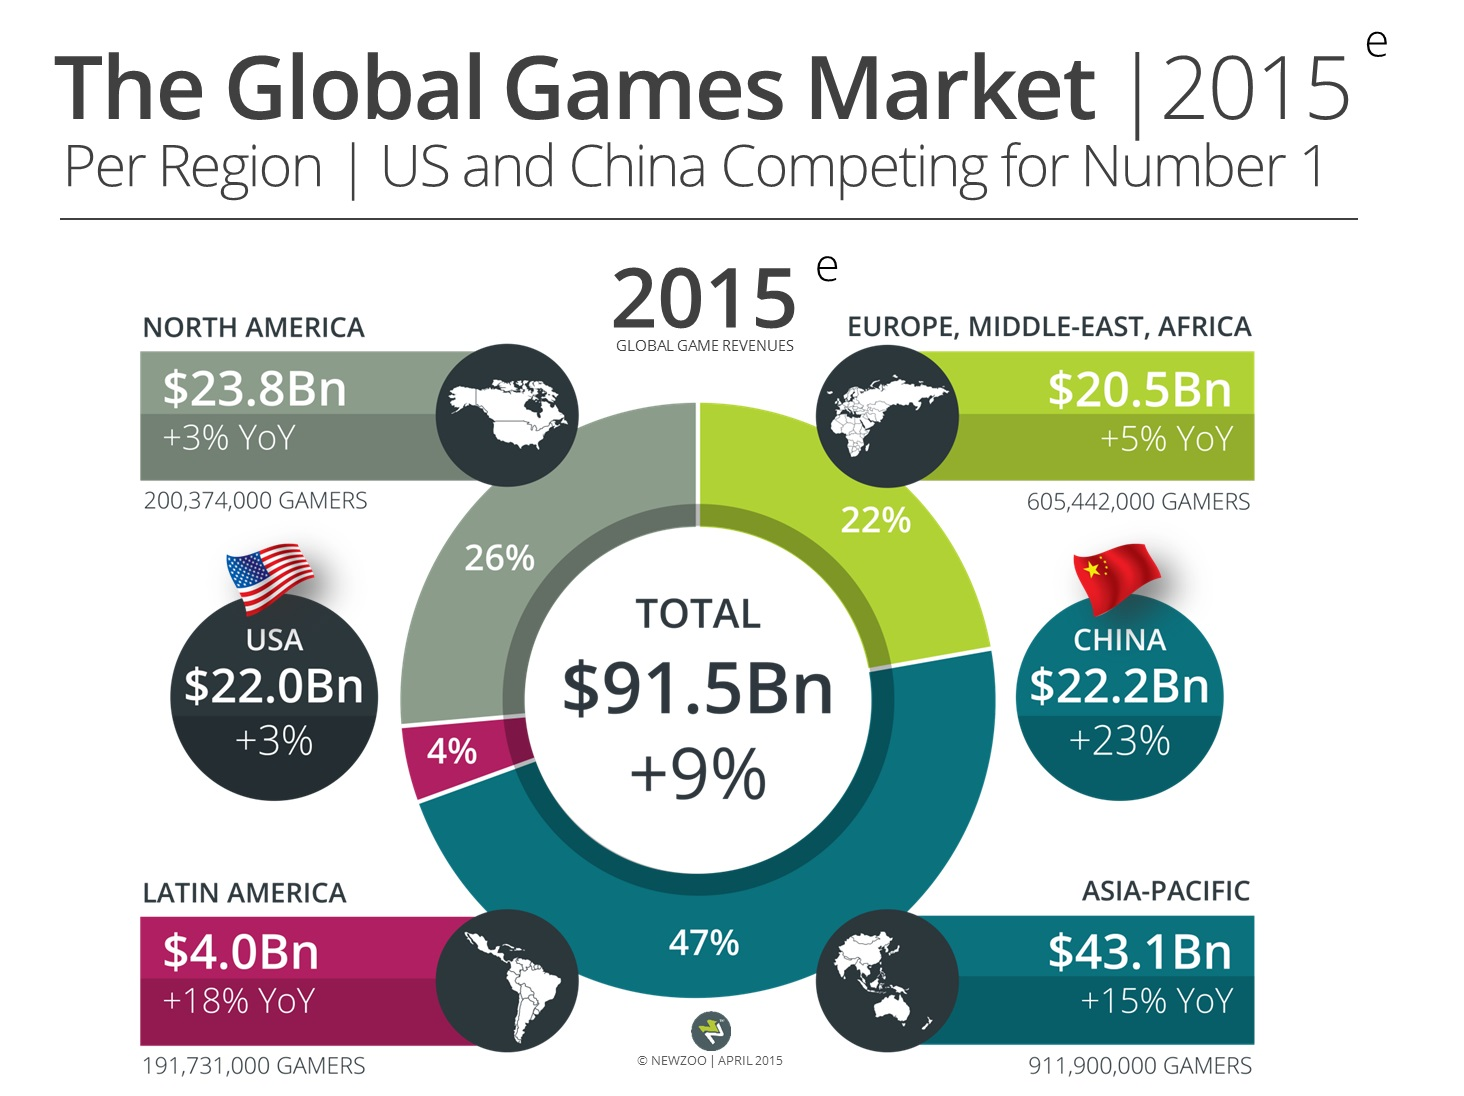 Fromhttp://www.gamesindustry.biz/articles/2015-04-22-gaming-will-hit-usd91-5-billion-this-year-newzoo